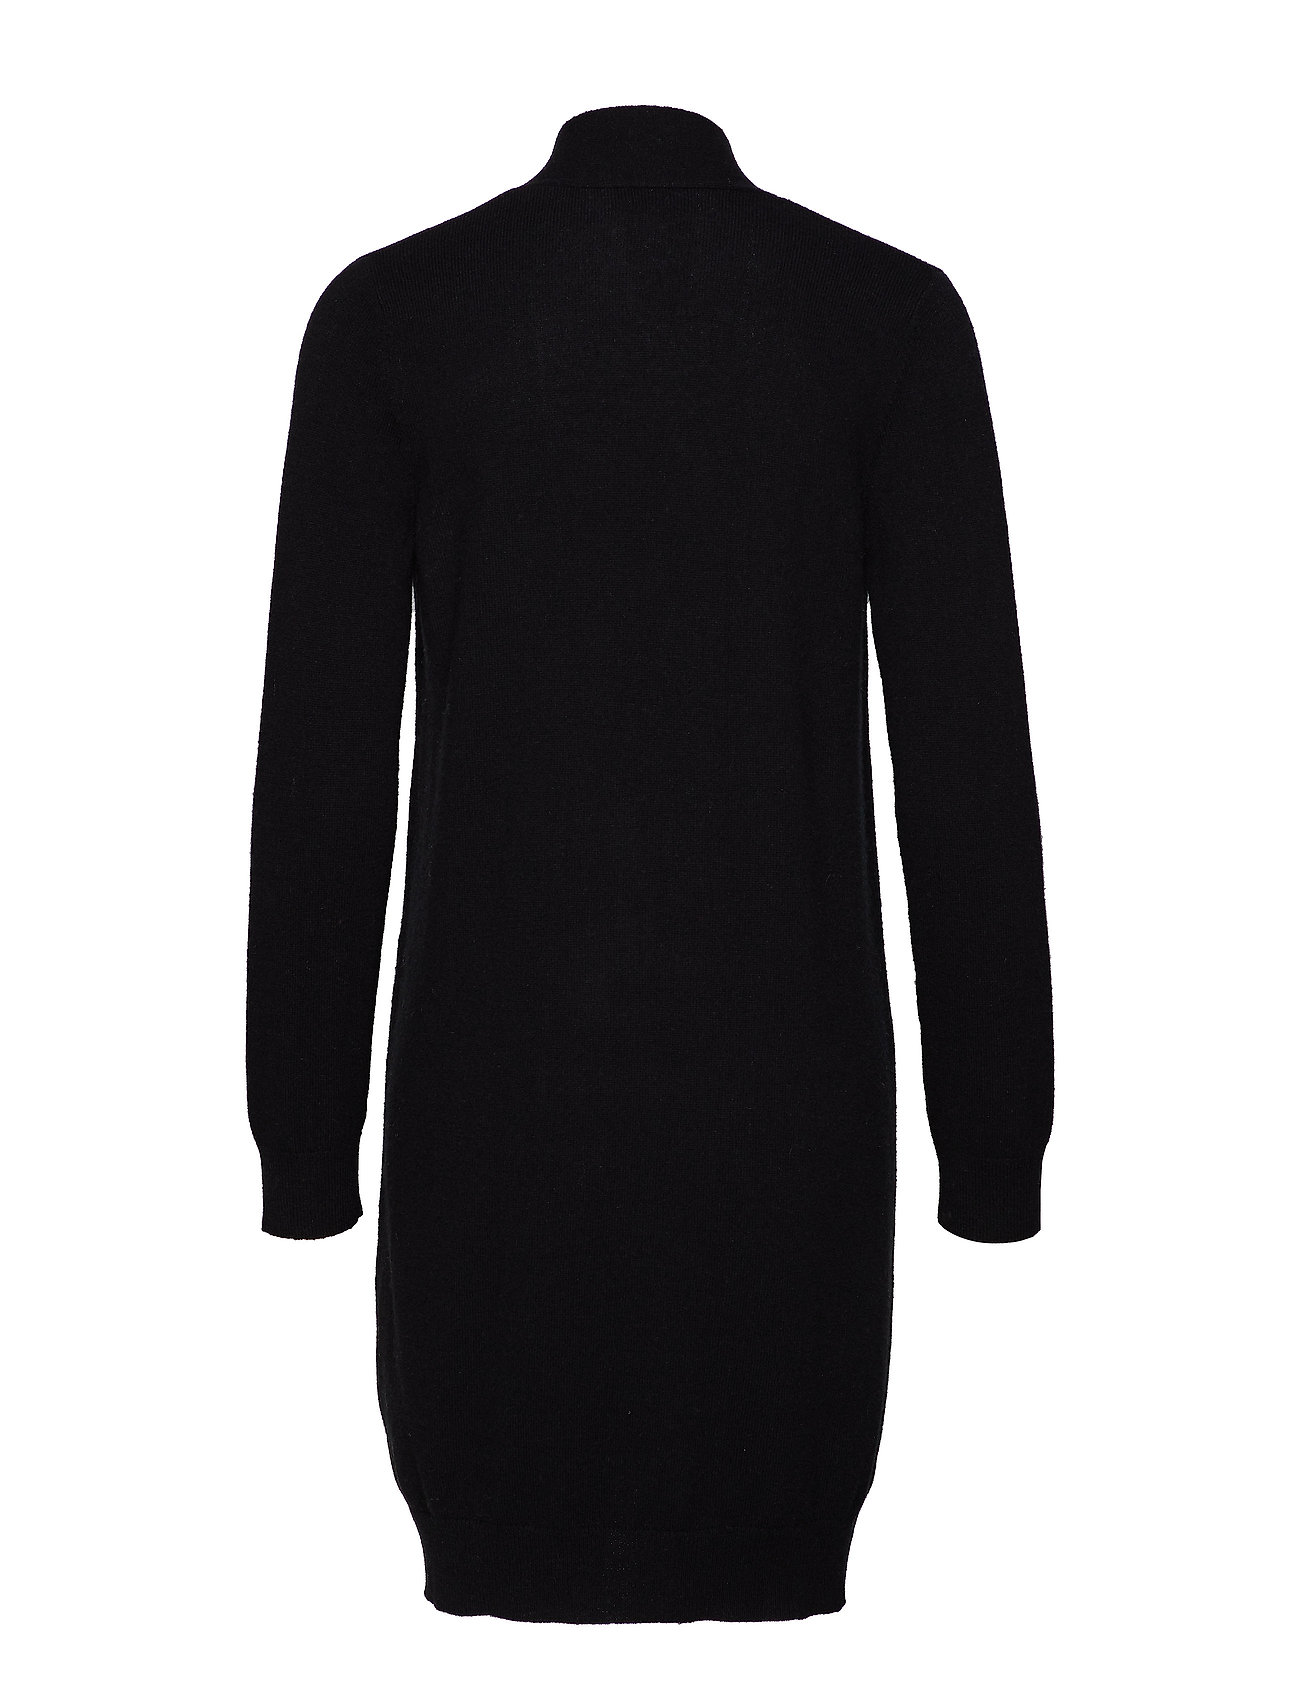 Davida Cashmere Pocket Long Cardigan - BLACK